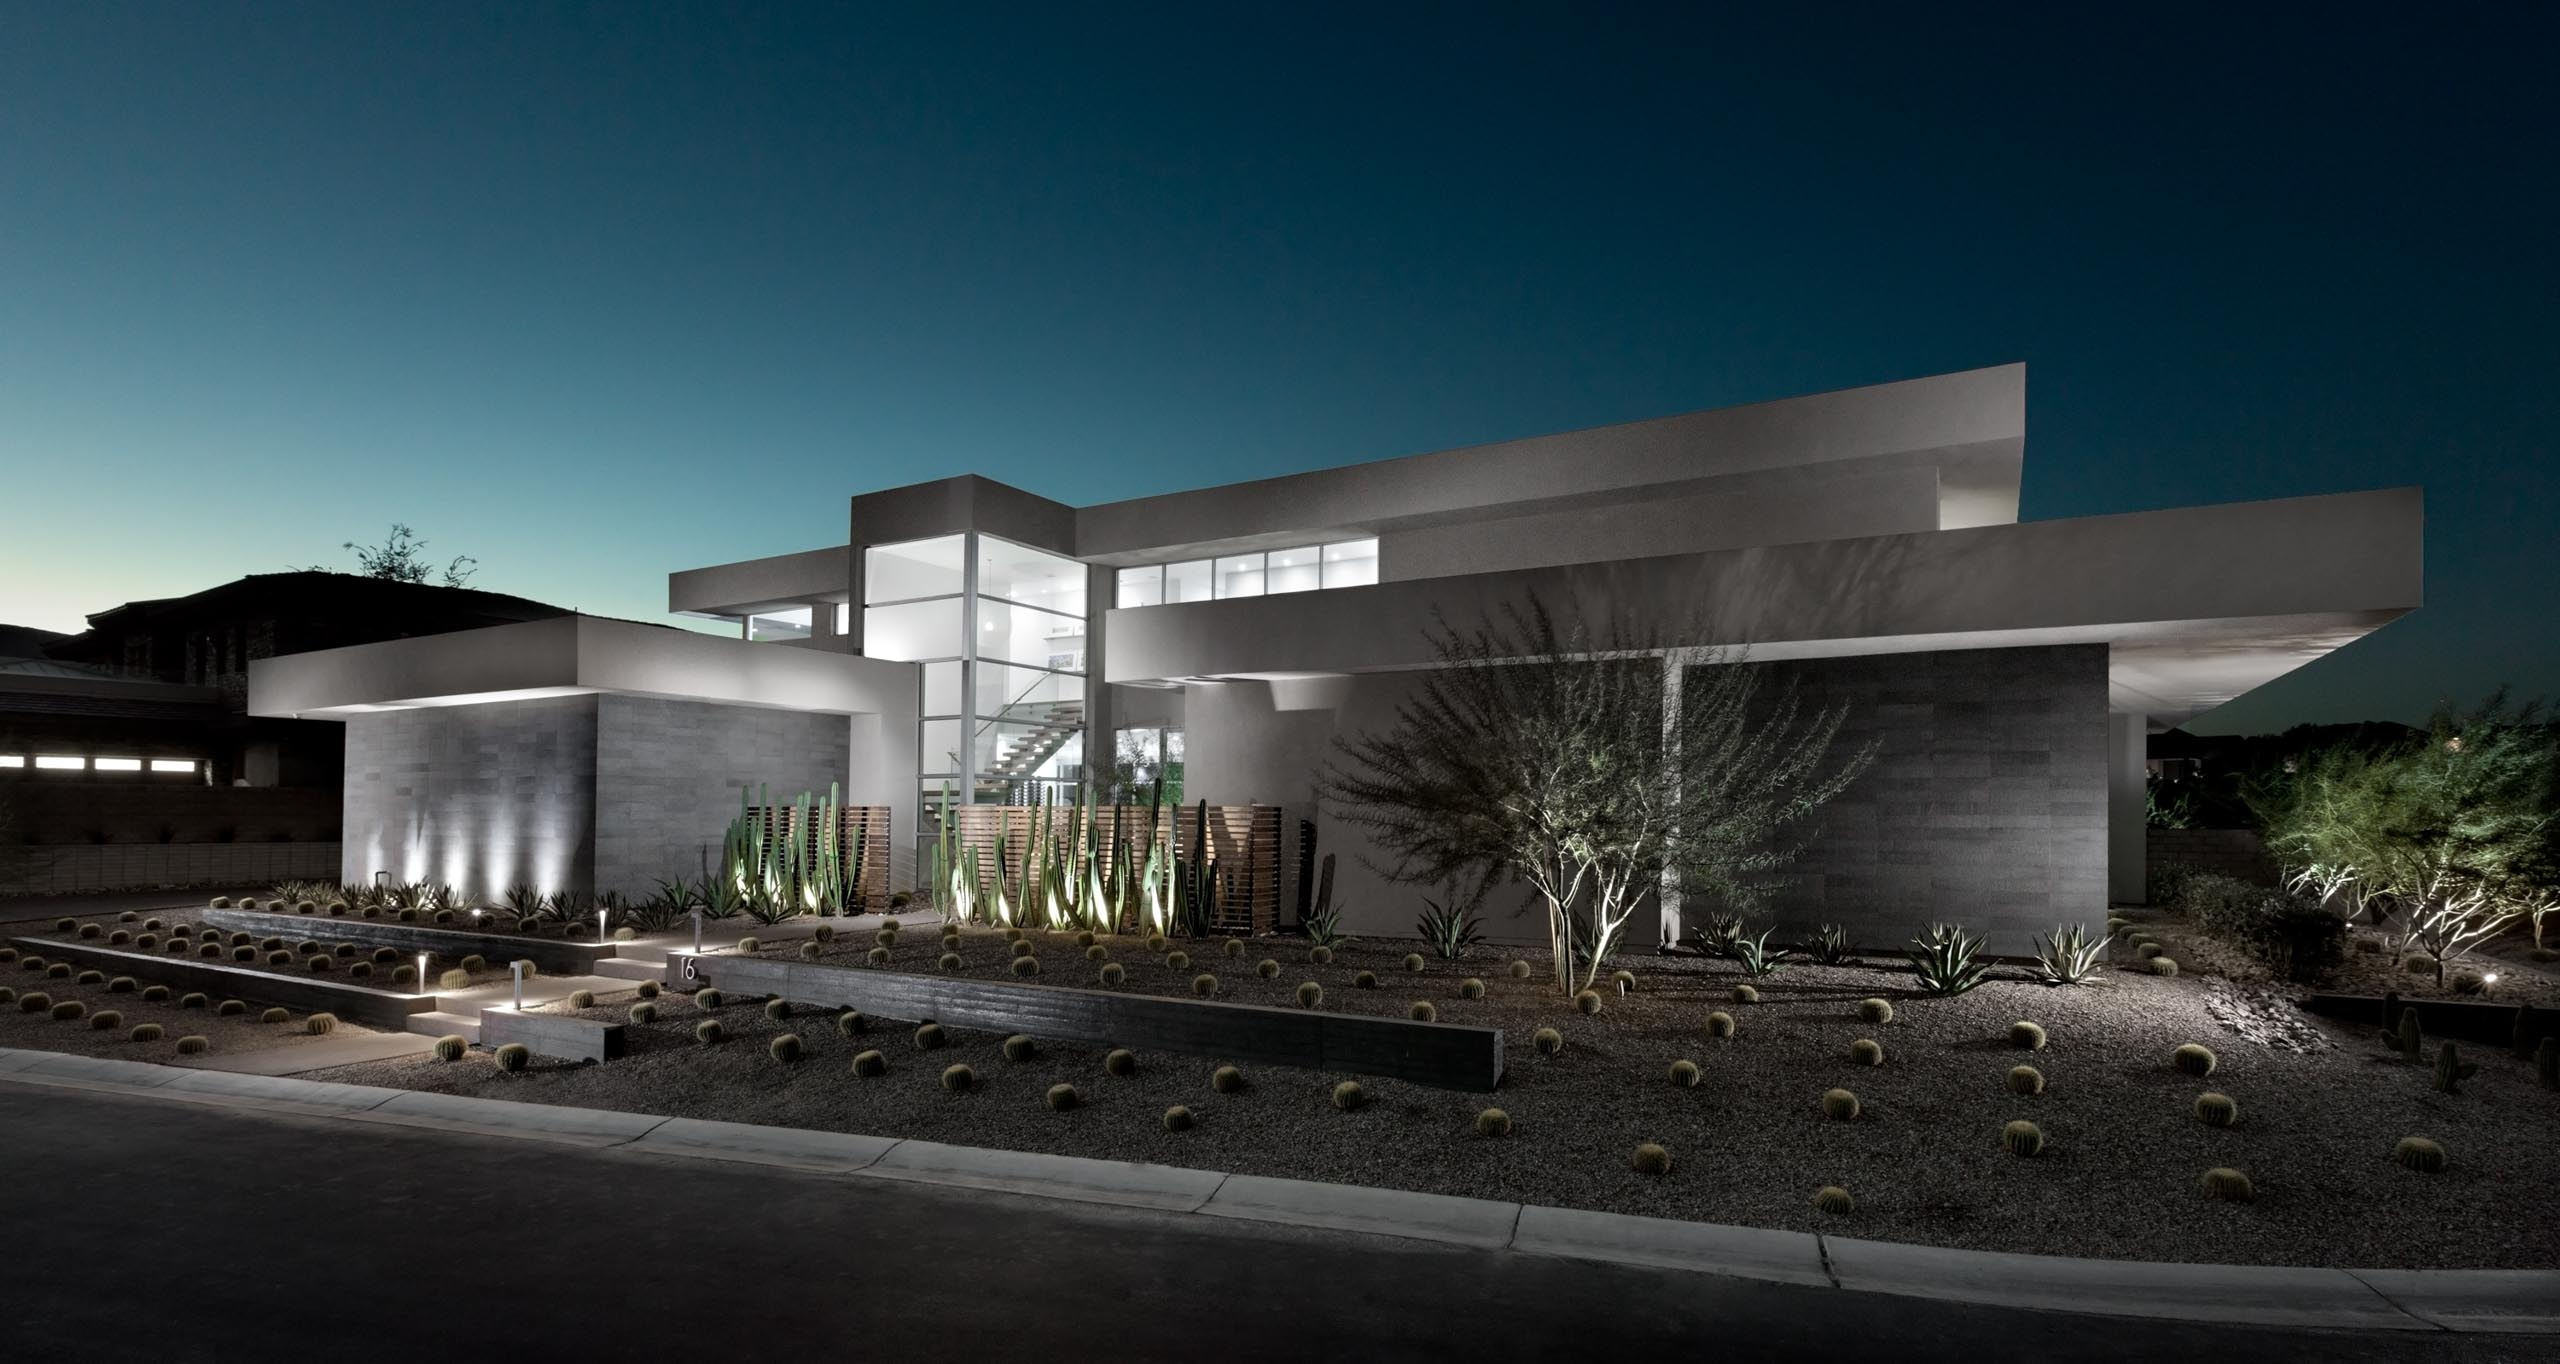 The home's design has a strong connection to the natural desert landscape.